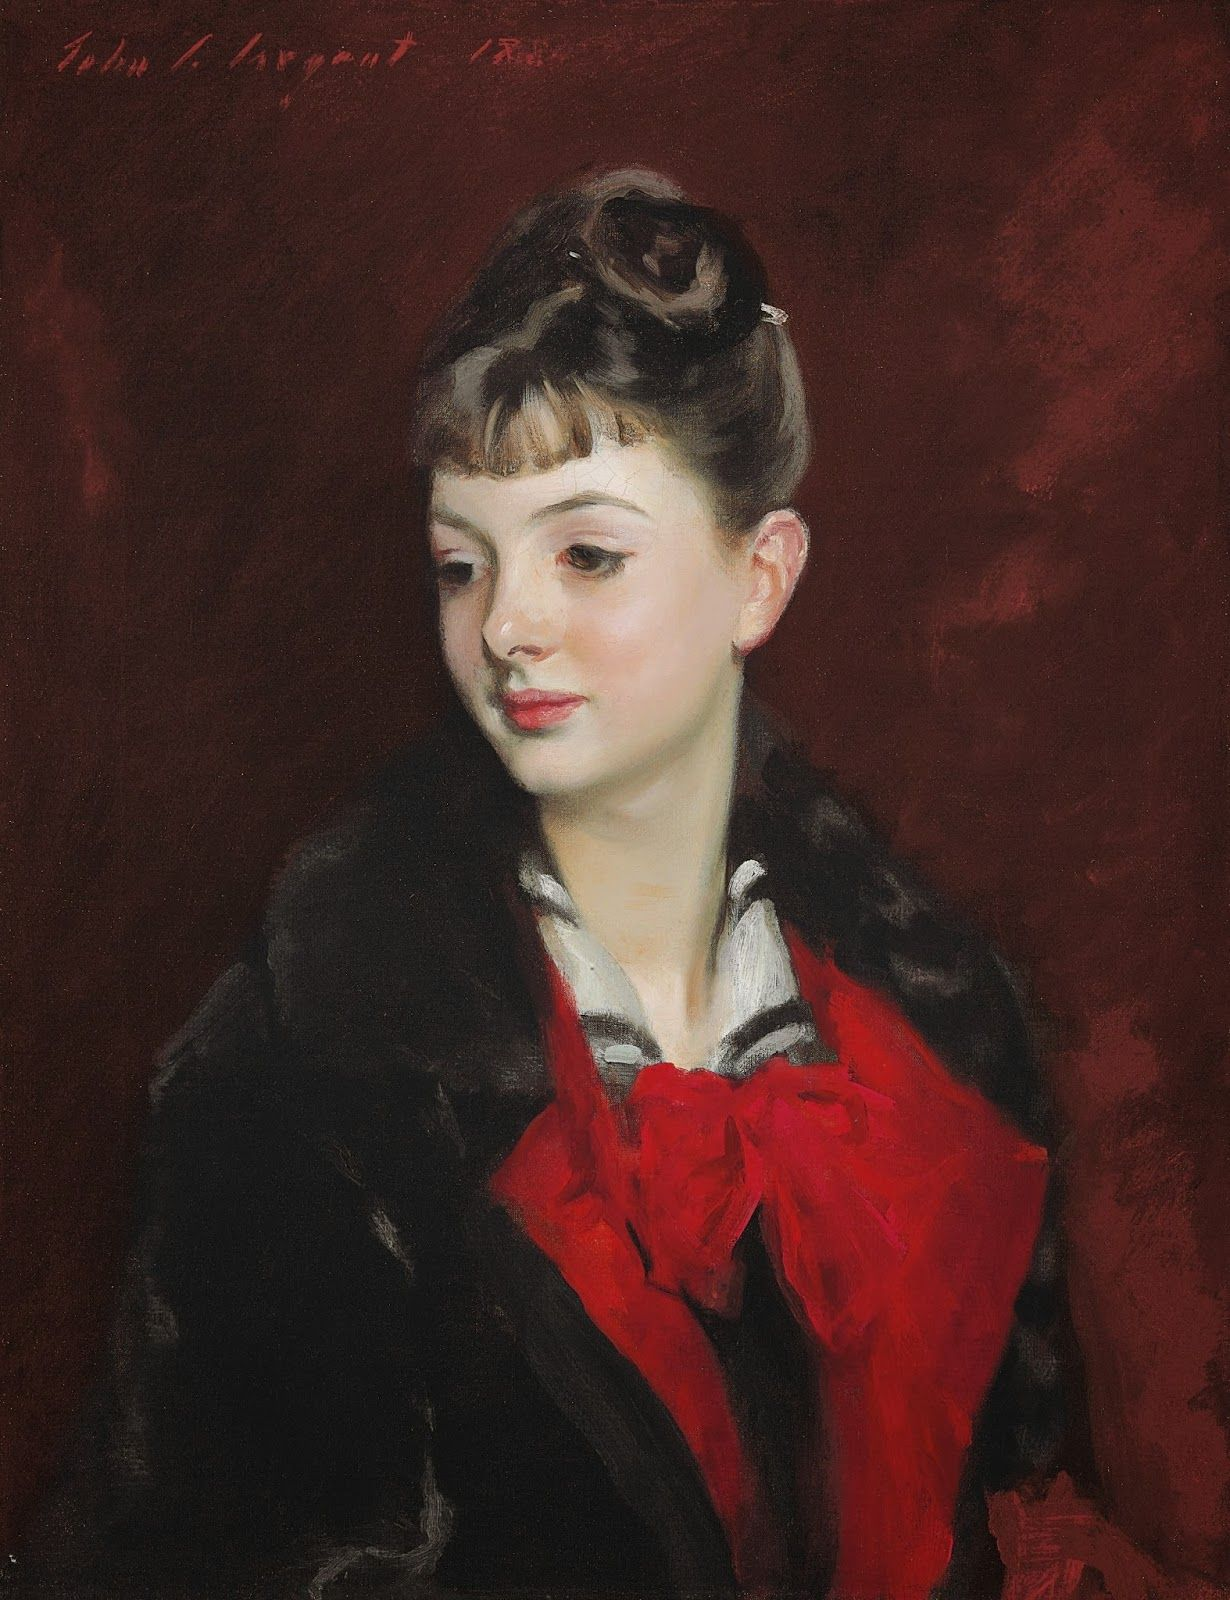 1884+Mademoiselle+Suzanne+Poirson+oil+on+canvas+61.1+x+48.5+cm+Private+Collection.jpg (1230×1600)